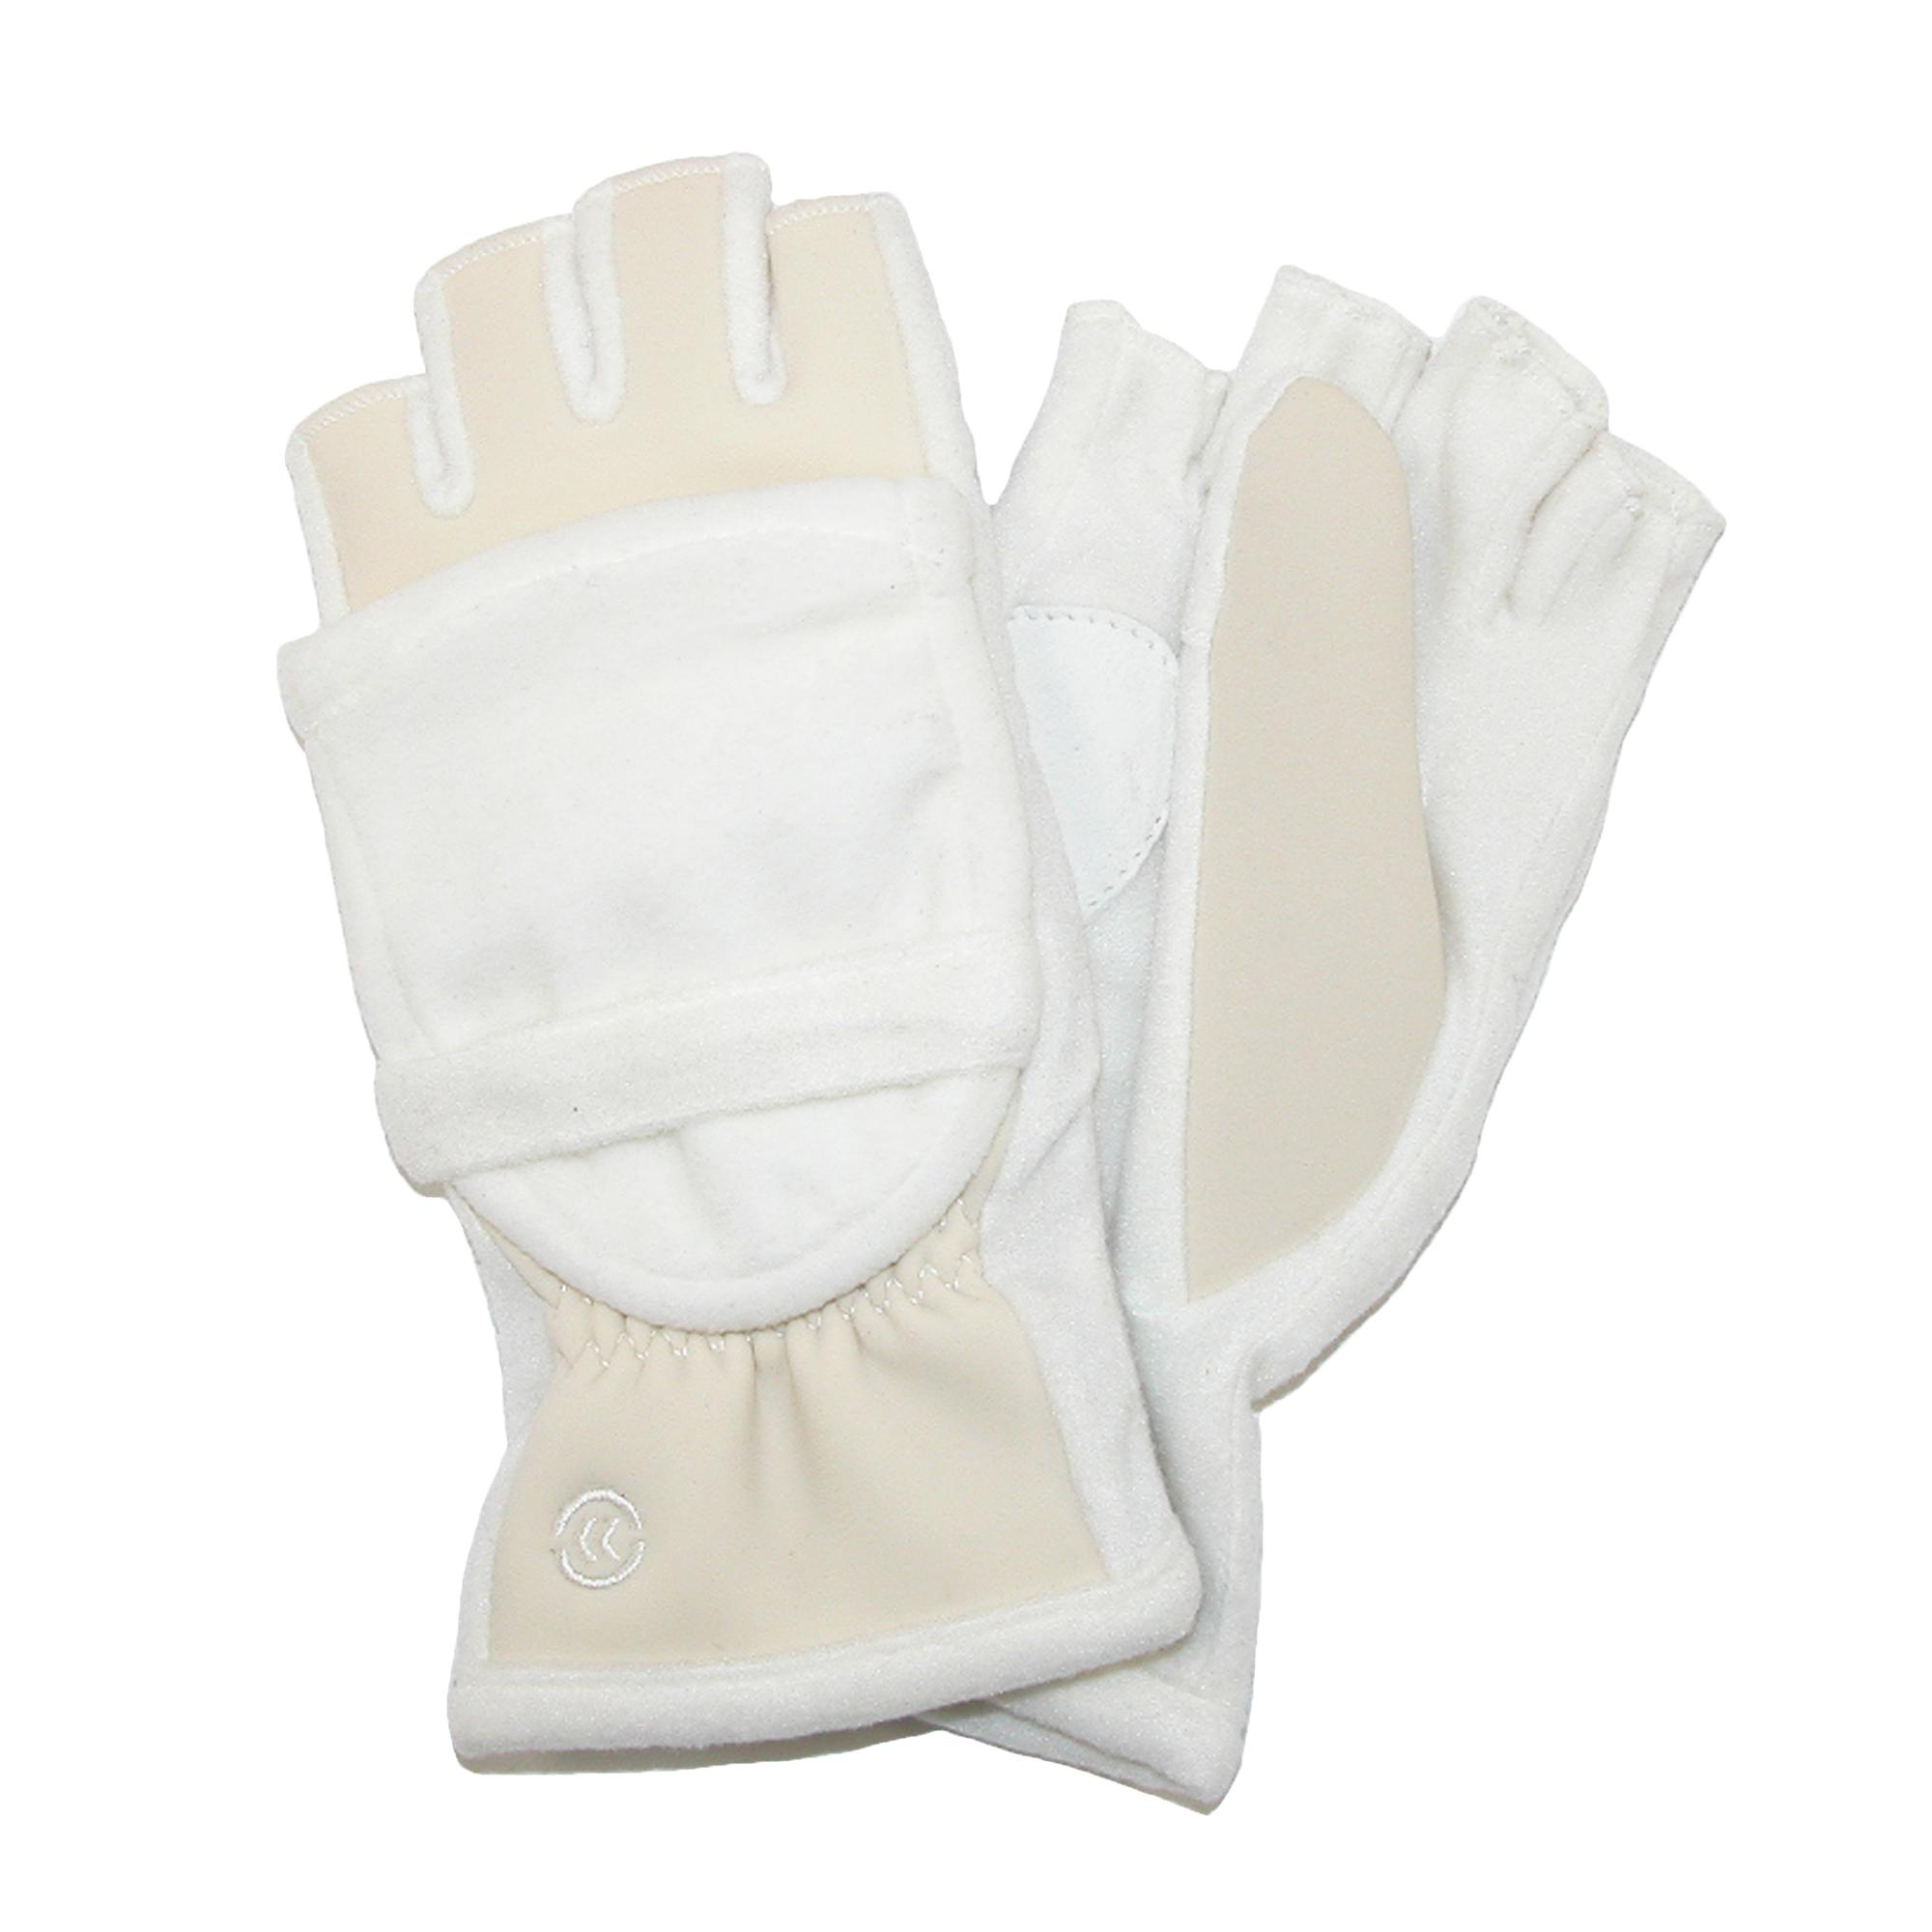 Isotoner womens leather gloves with fleece lining - Picture 27 Of 36